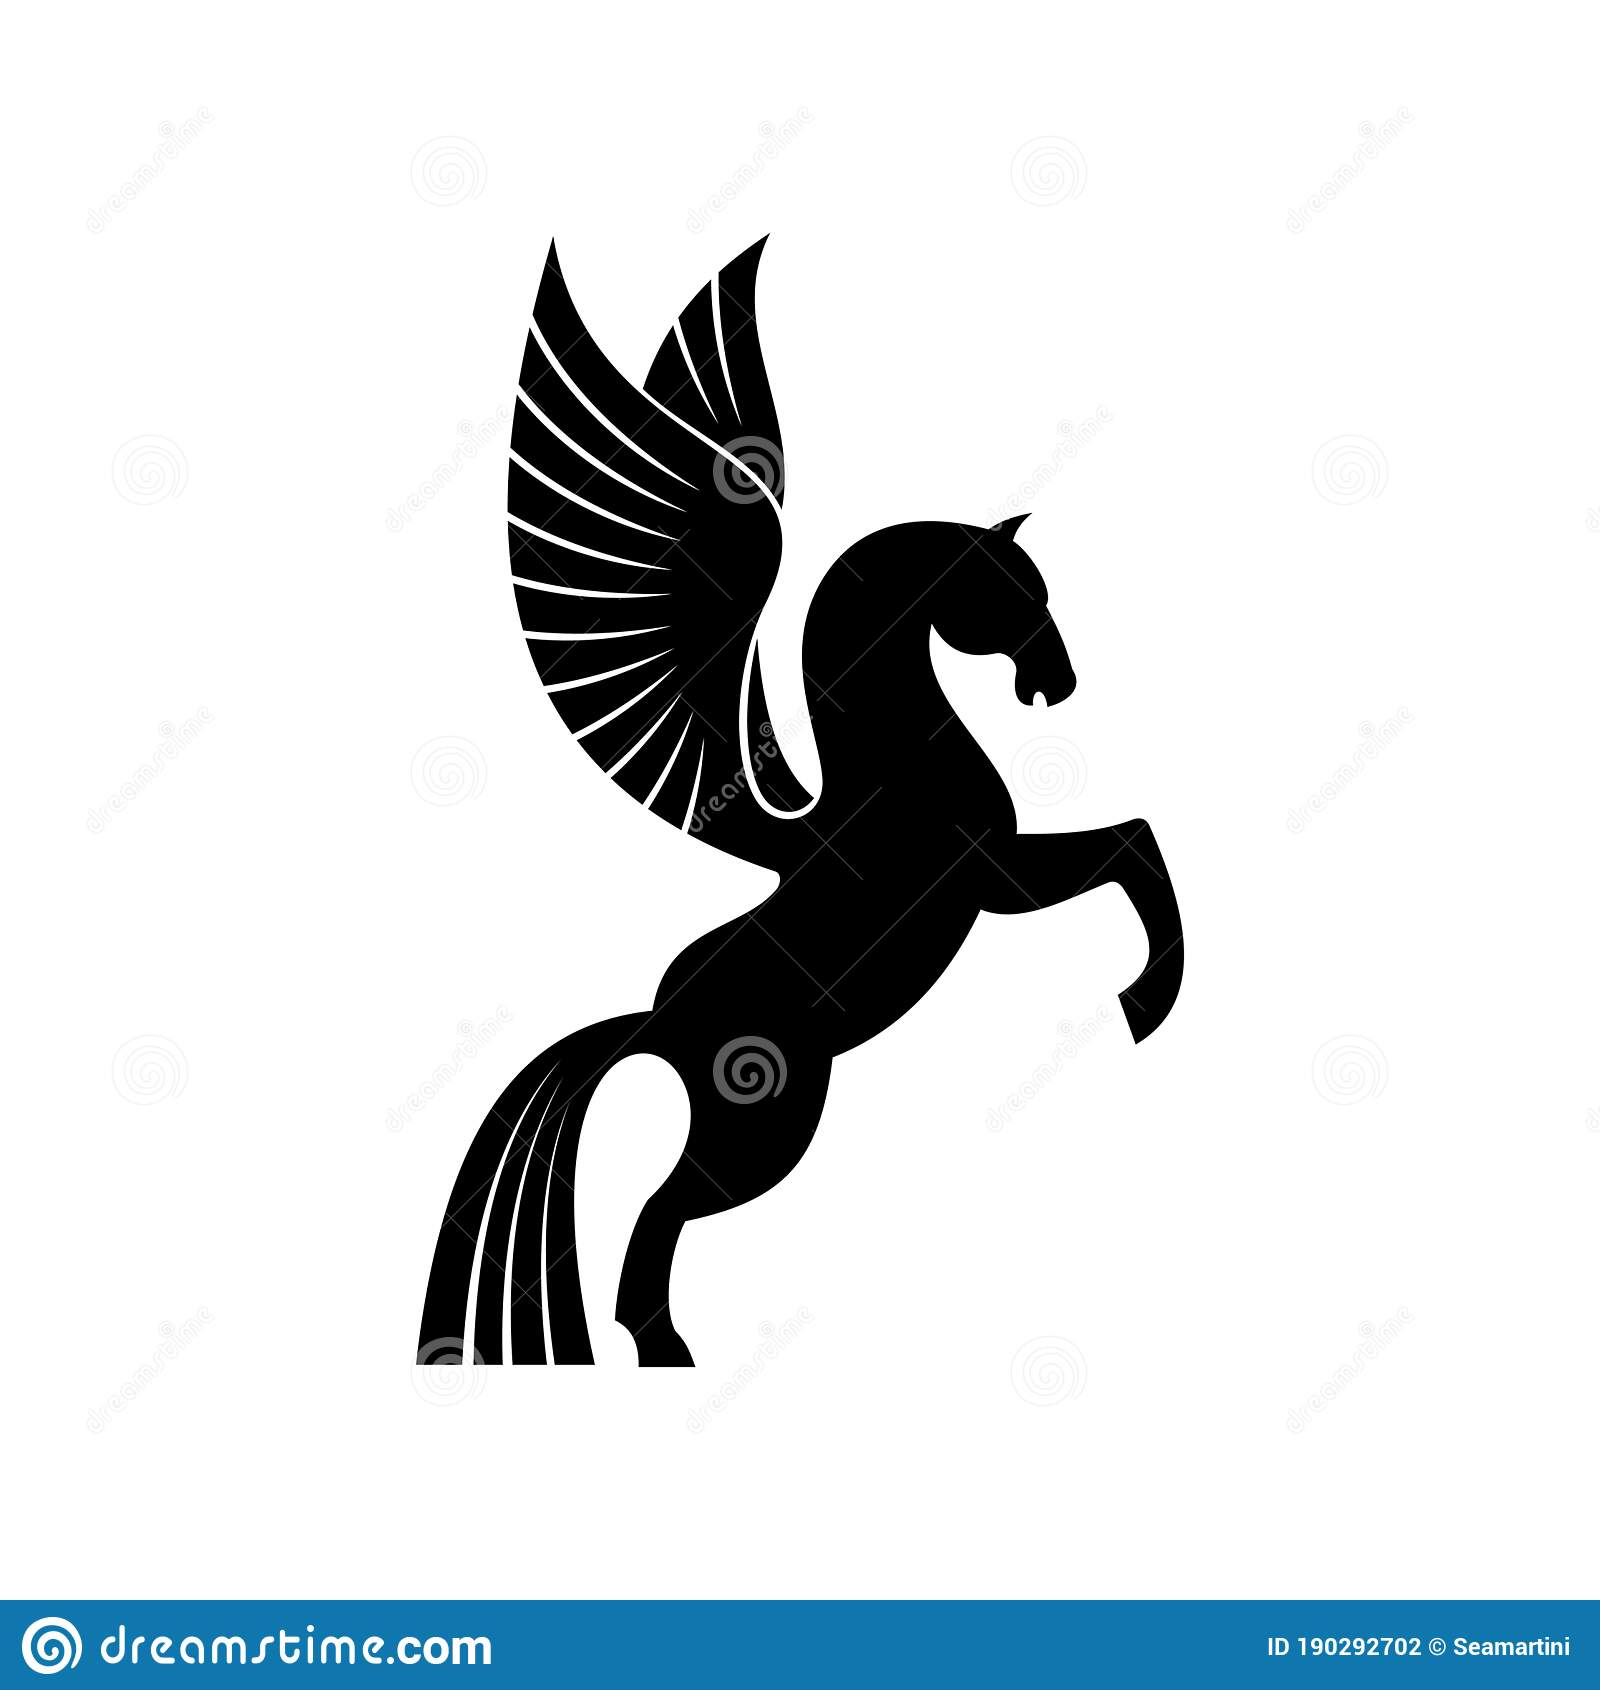 Pegasus With Wings Isolated Mythical Animal Stock Vector Illustration Of Tattoo Emblem 190292702